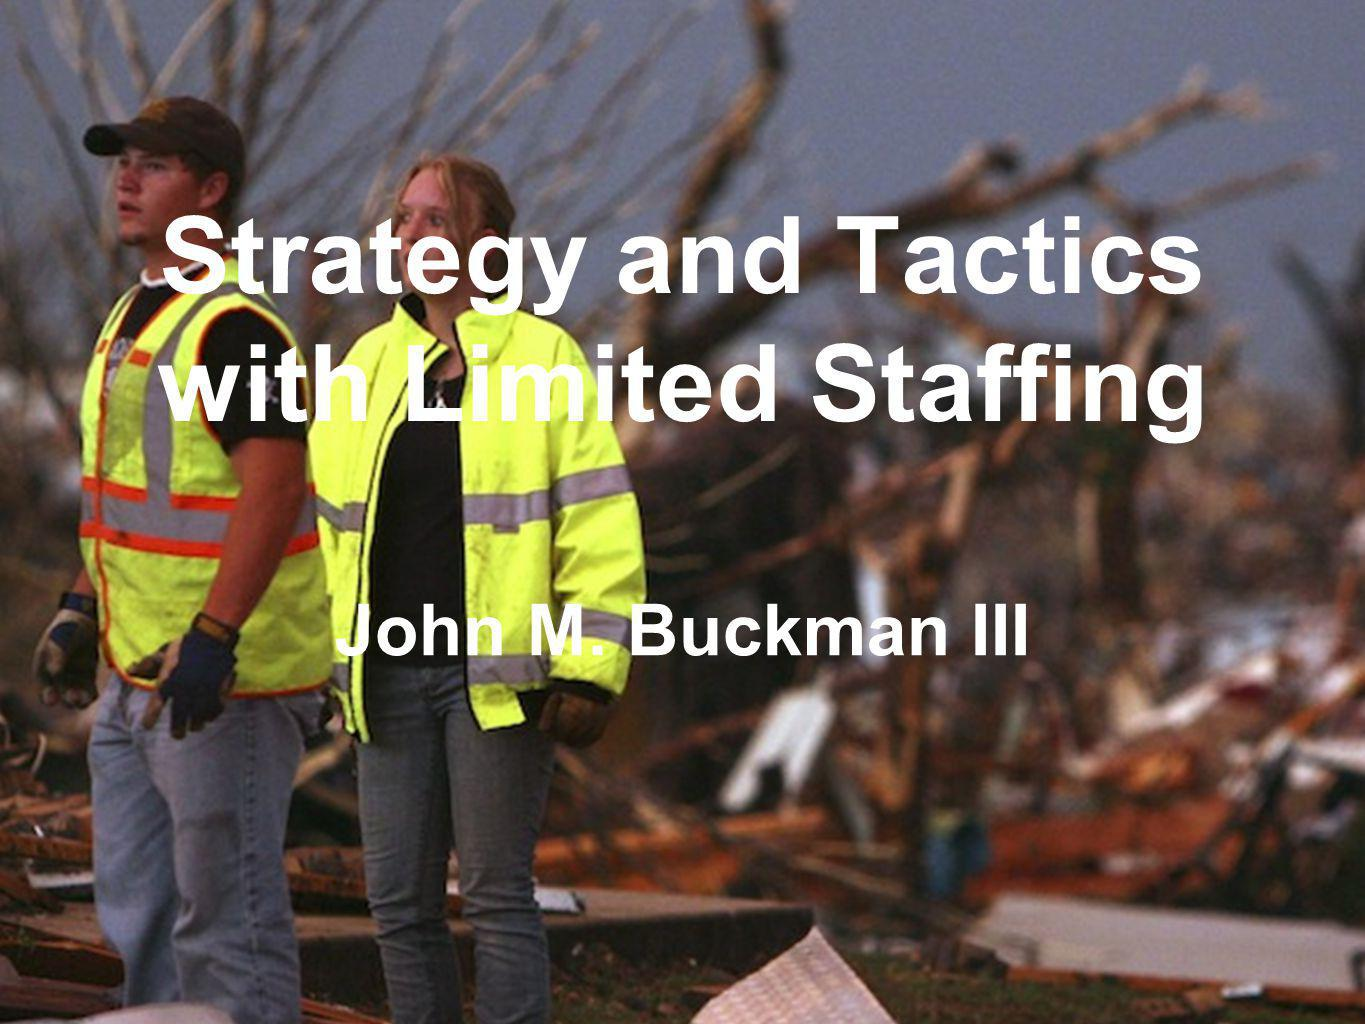 Strategy and Tactics with Limited Staffing John M. Buckman III